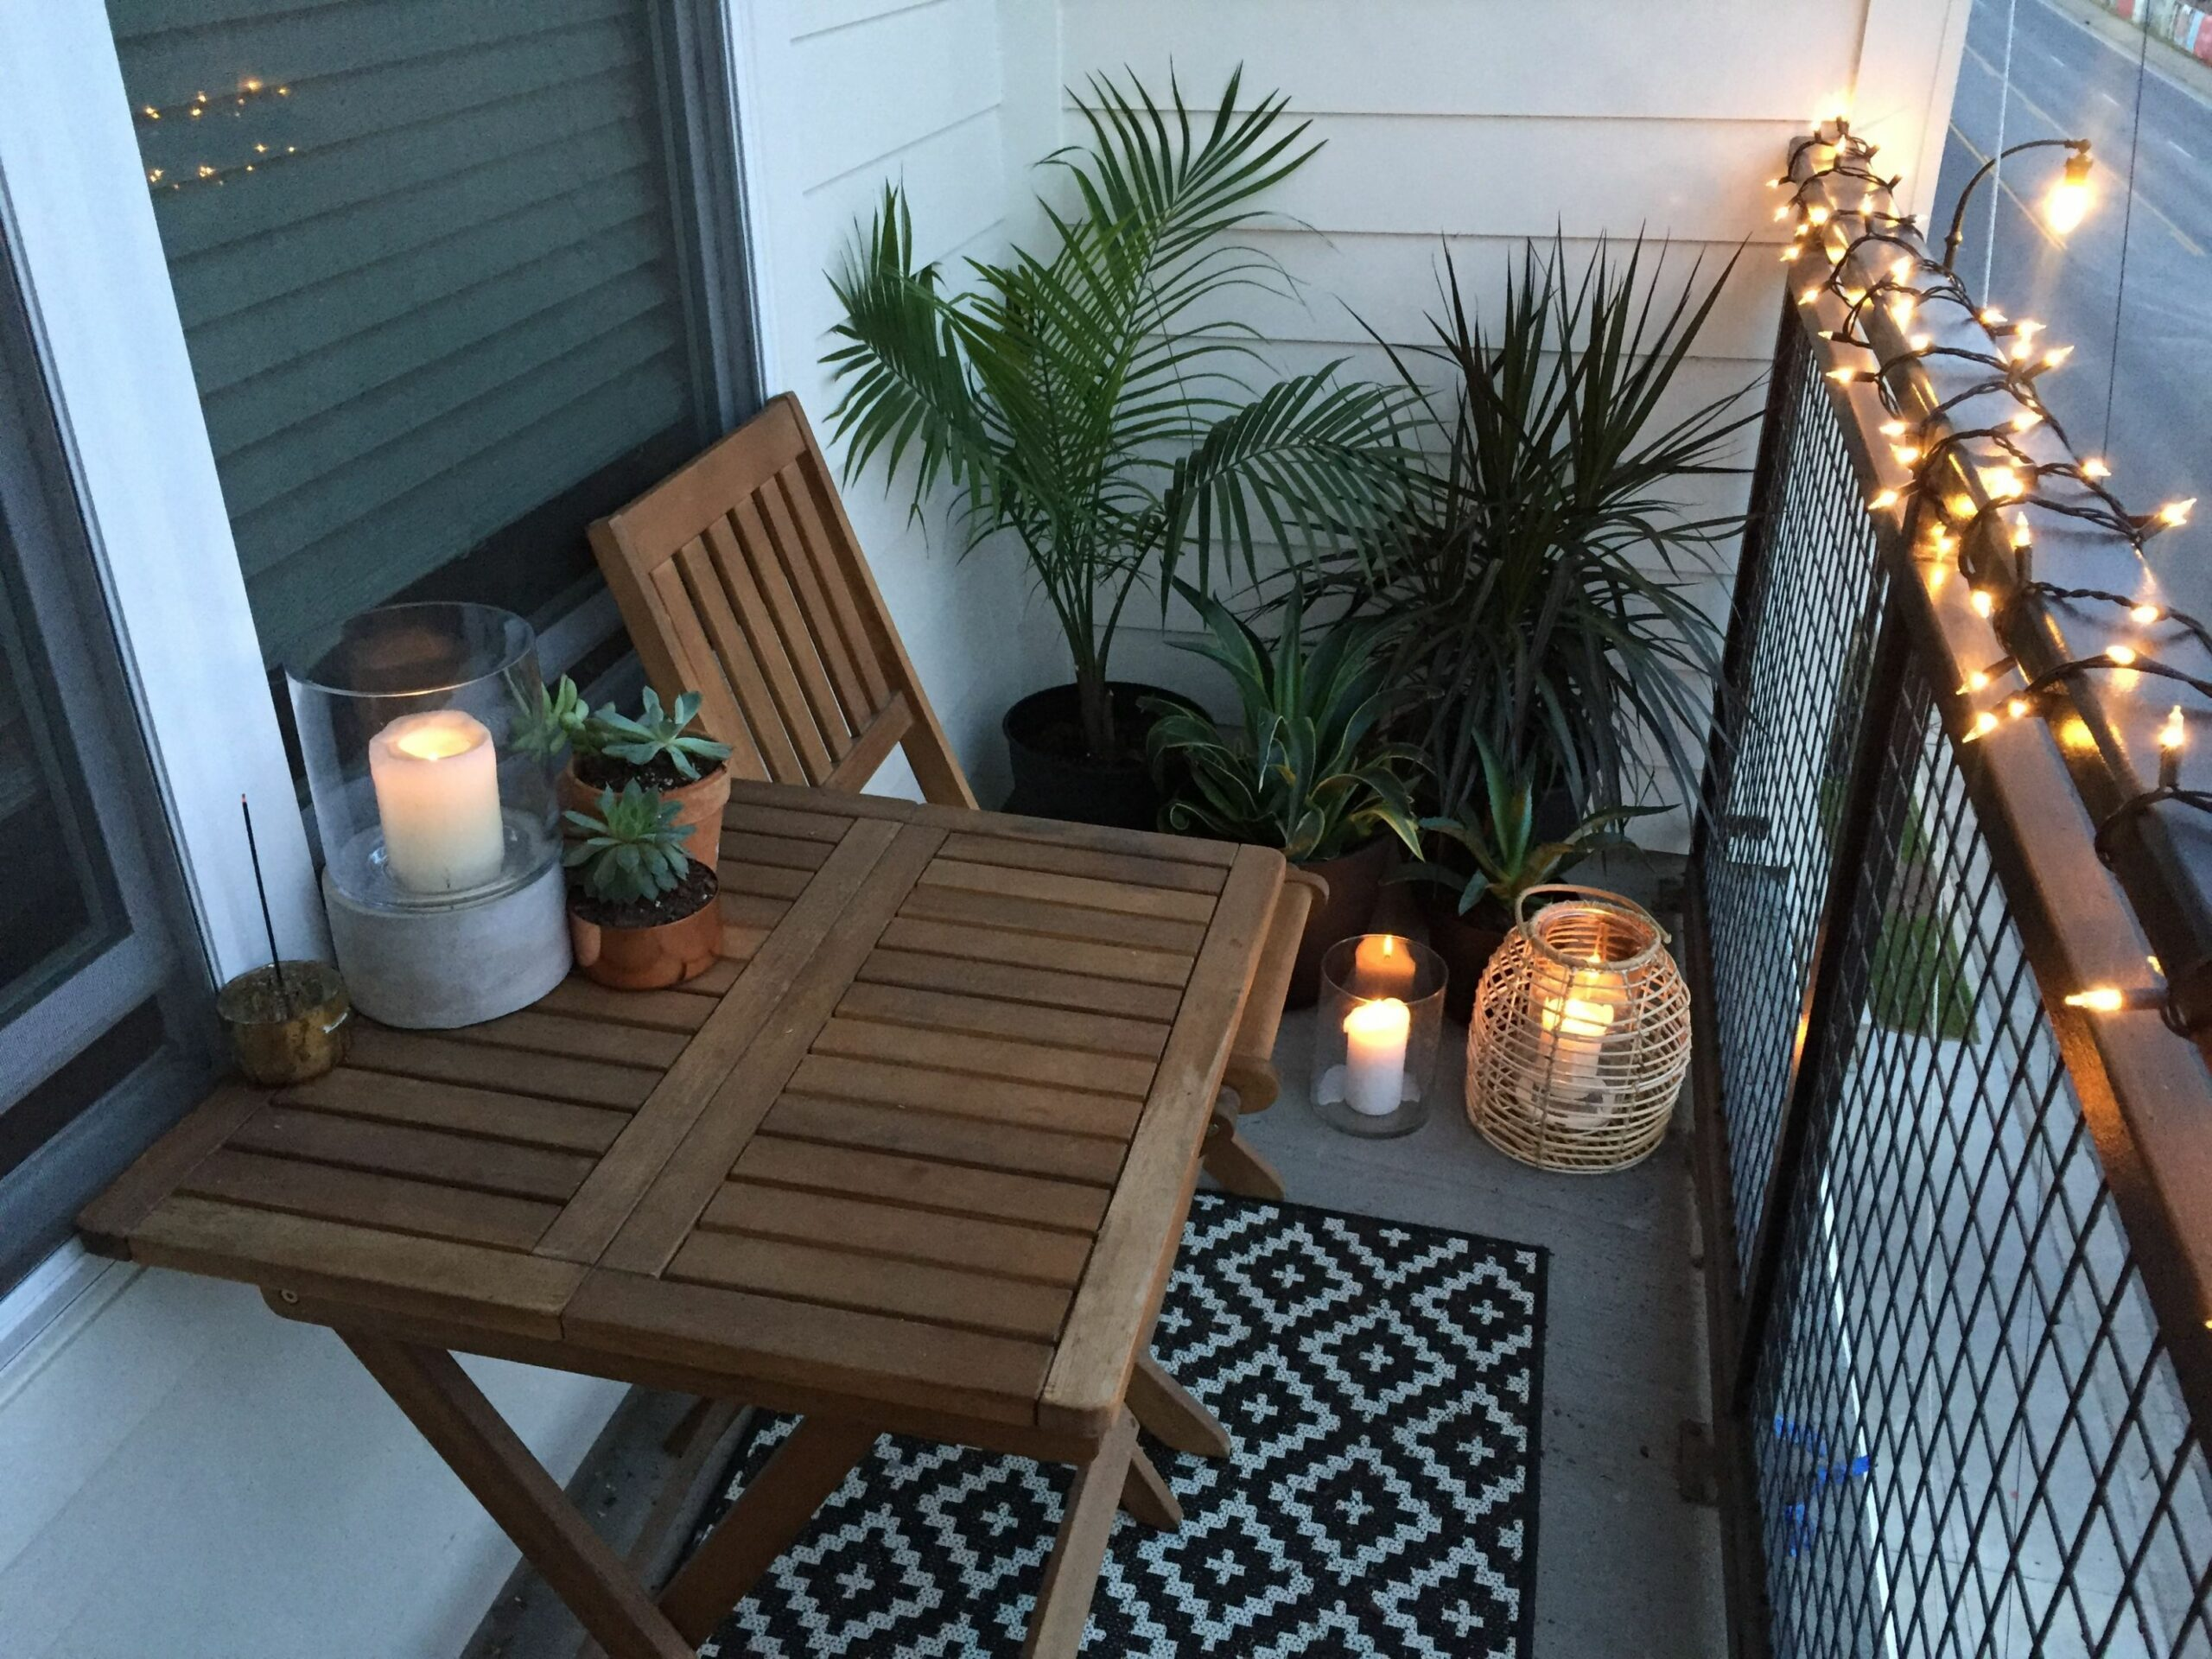 Apartment small balcony decor ideas and design. Balcony garden ...